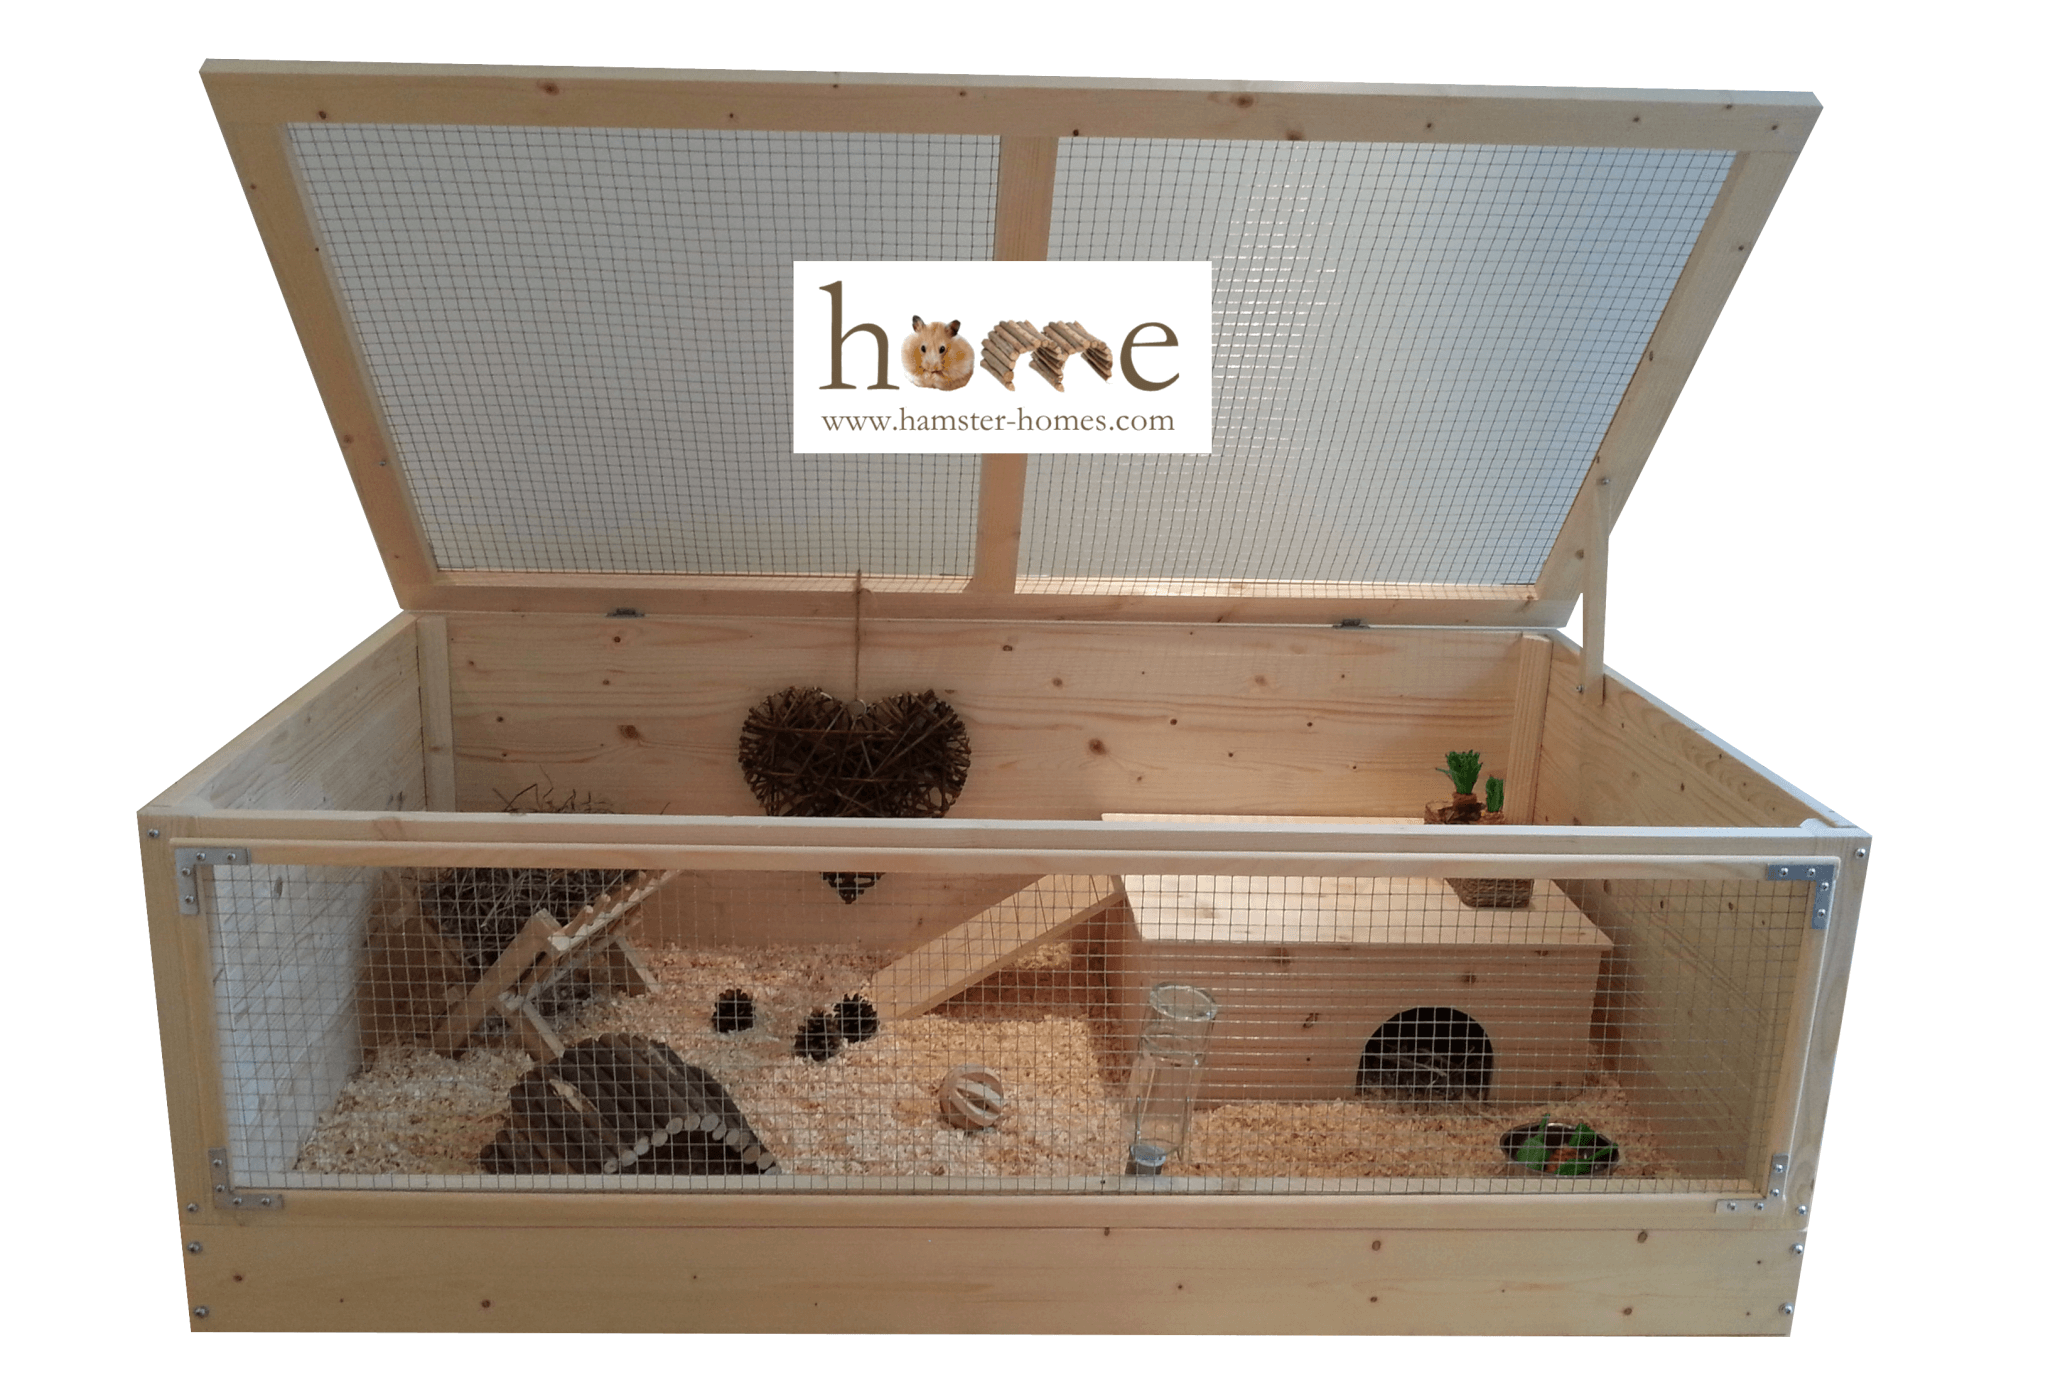 A Frame Homes For Sale Super Large Wooden Guinea Pig Cage With Roof 120 X 60cm